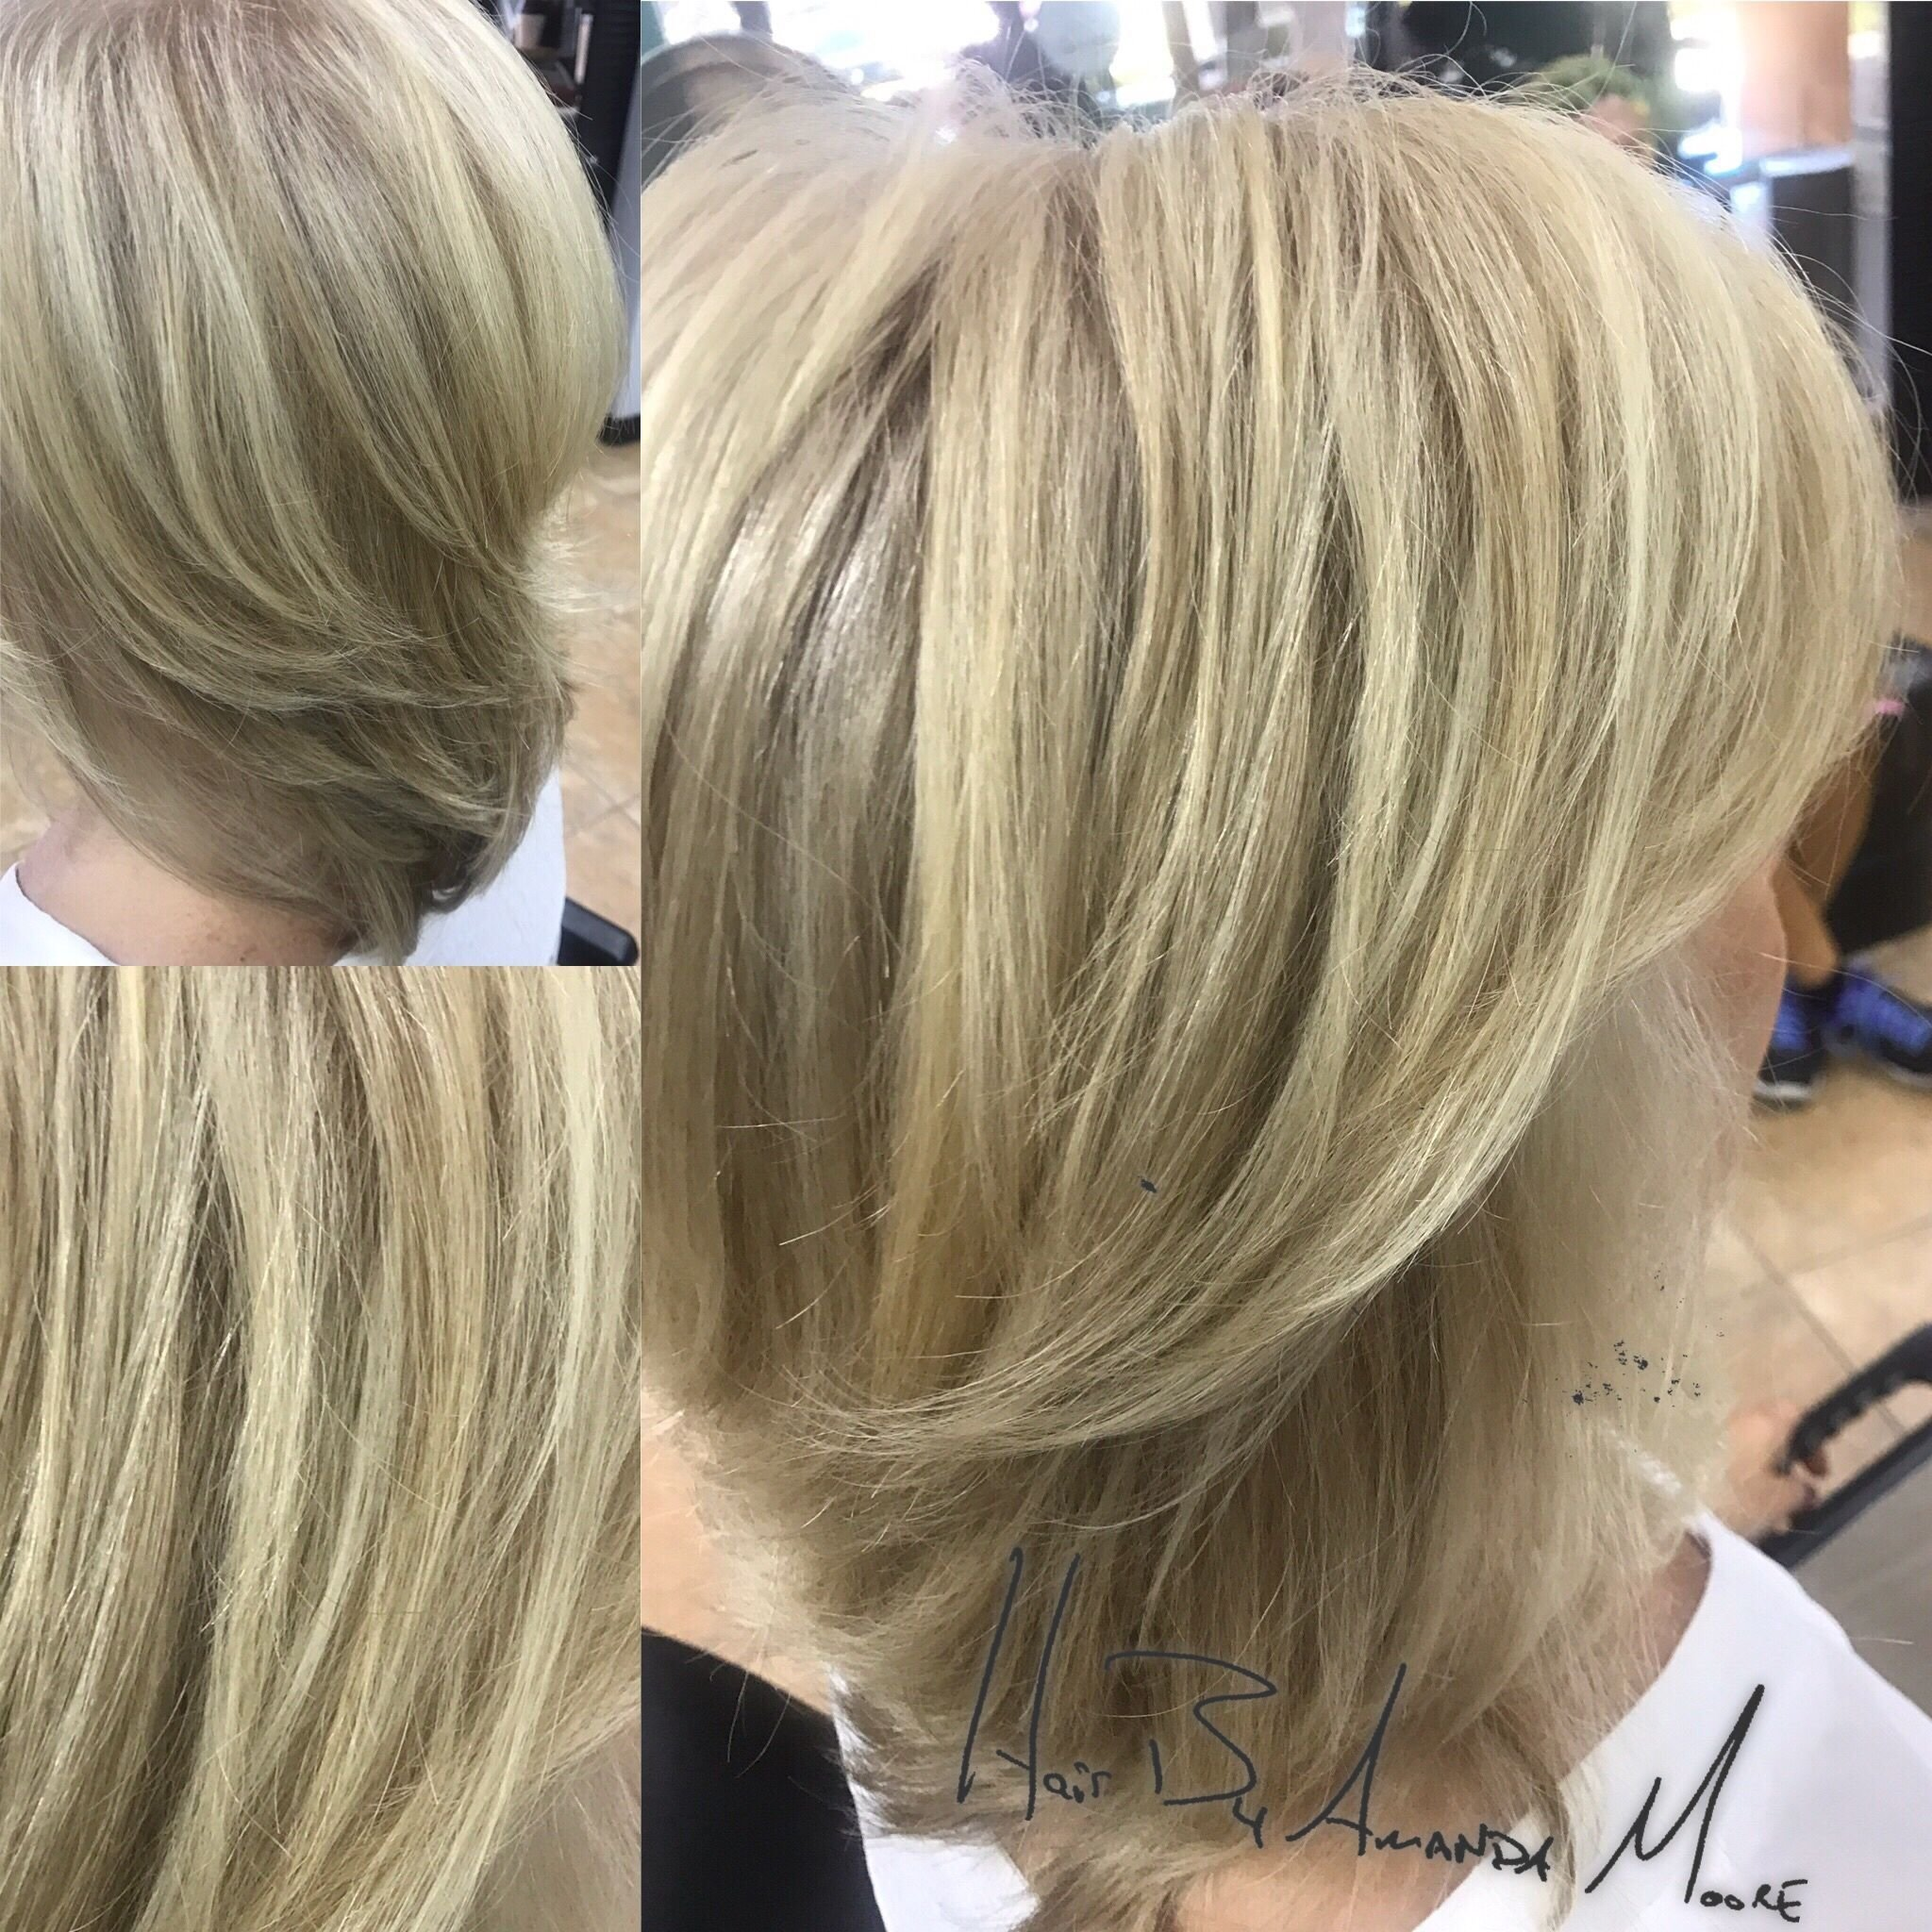 The Best 10N 10Nw Redken Chromatics Salonsantinas Behindthechair Pictures Original 1024 x 768